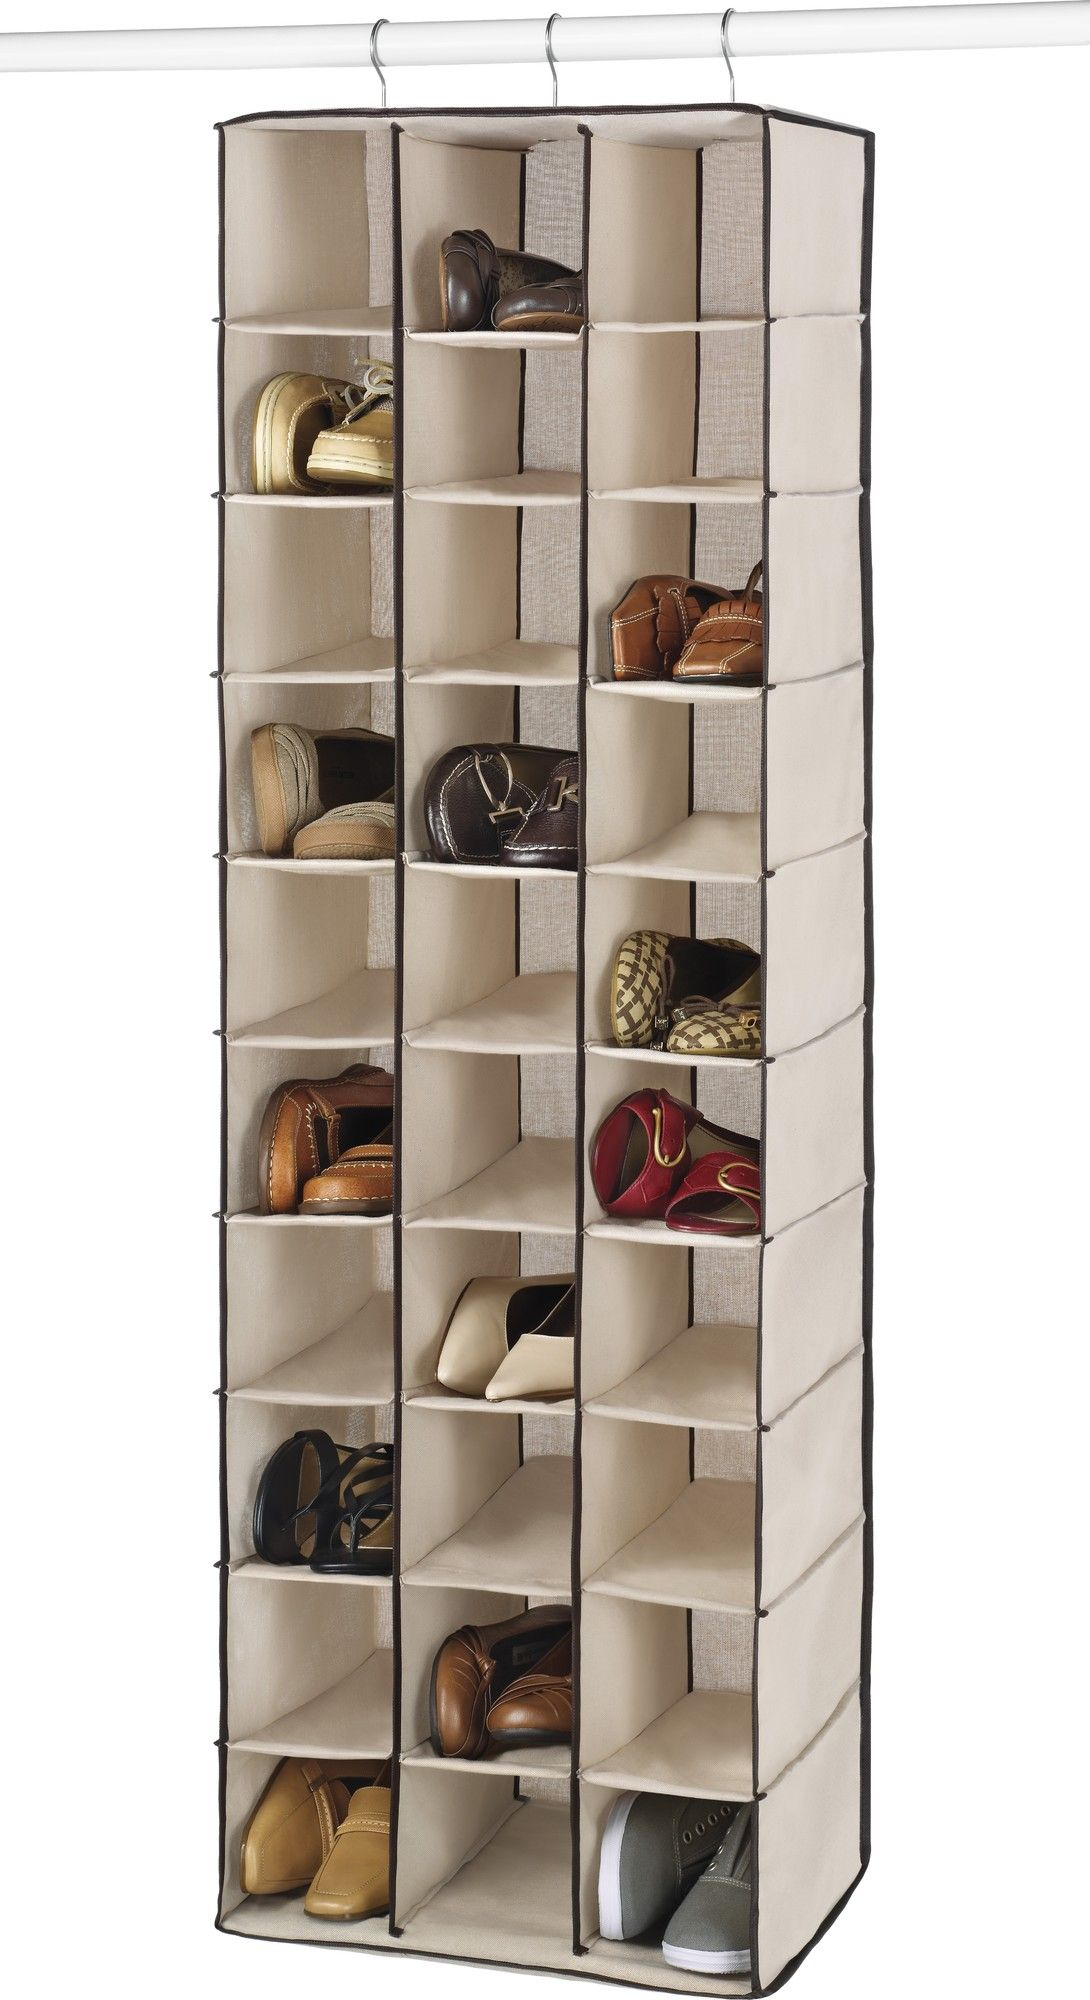 Shoe Racks And Organizers Endearing 30 Pair Hanging Shoe Organizer  Pinterest  Hanging Shoe Organizer 2018